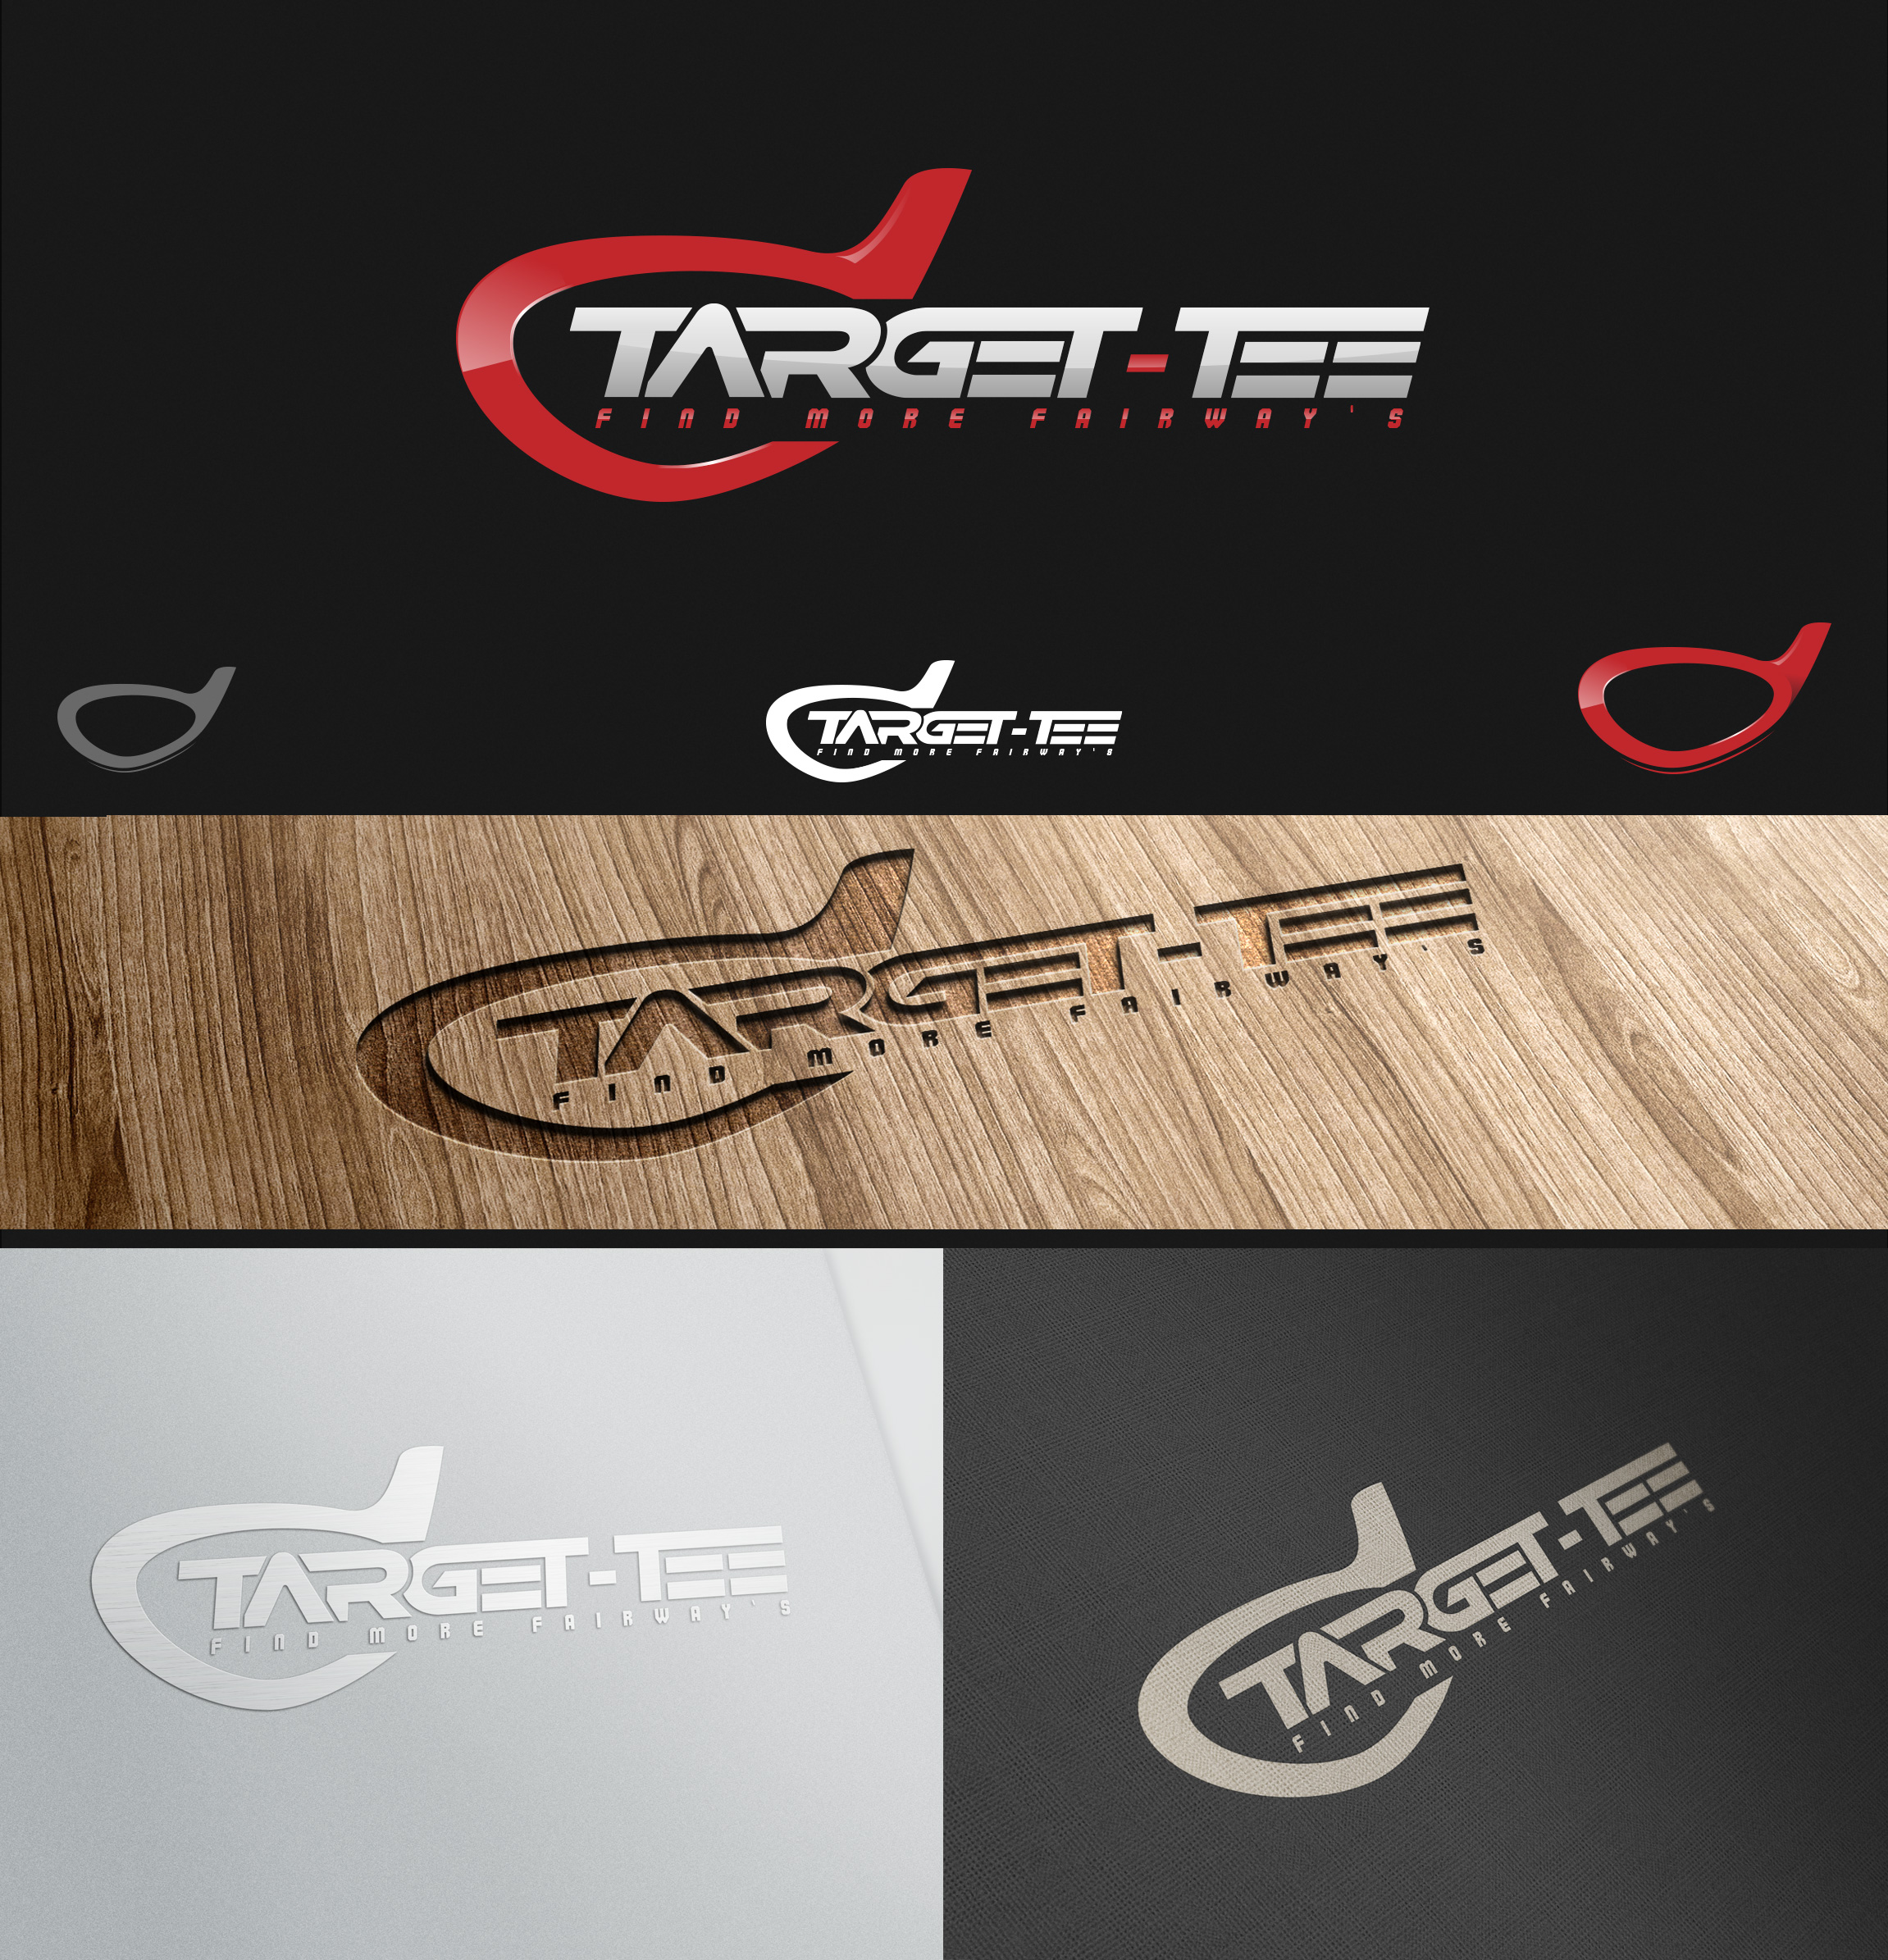 Logo Design by olii - Entry No. 142 in the Logo Design Contest Imaginative Logo Design for TARGET-TEE.